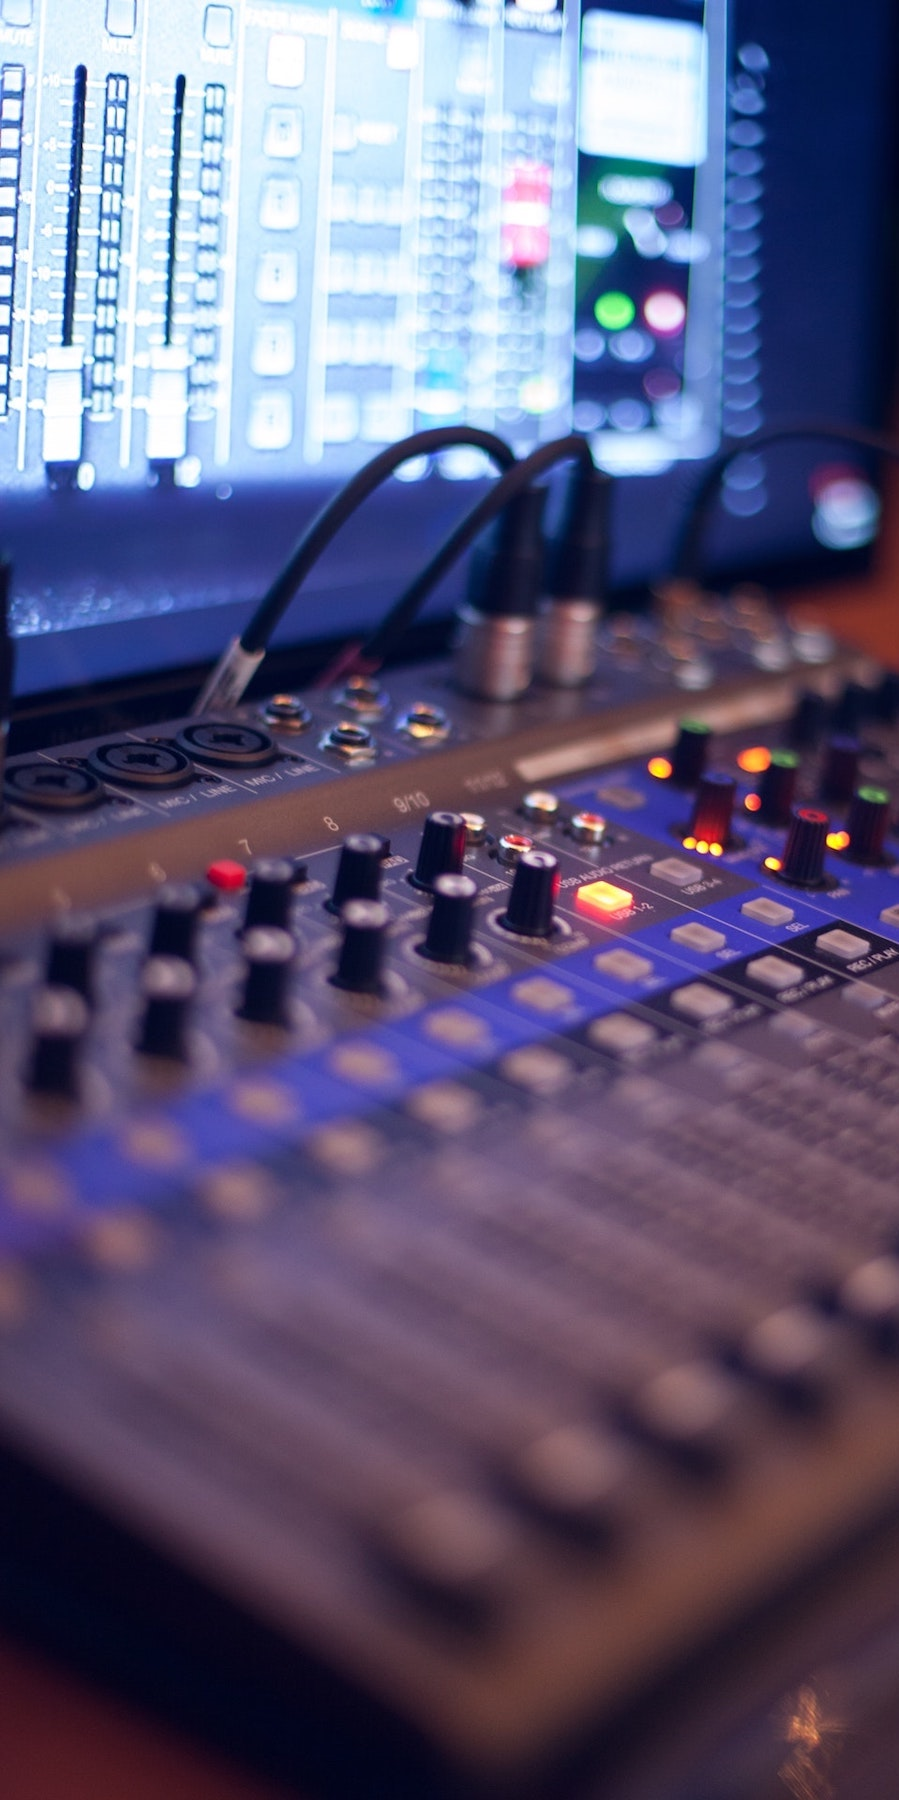 Edit a voice actor's voice over: image of a mixing desk